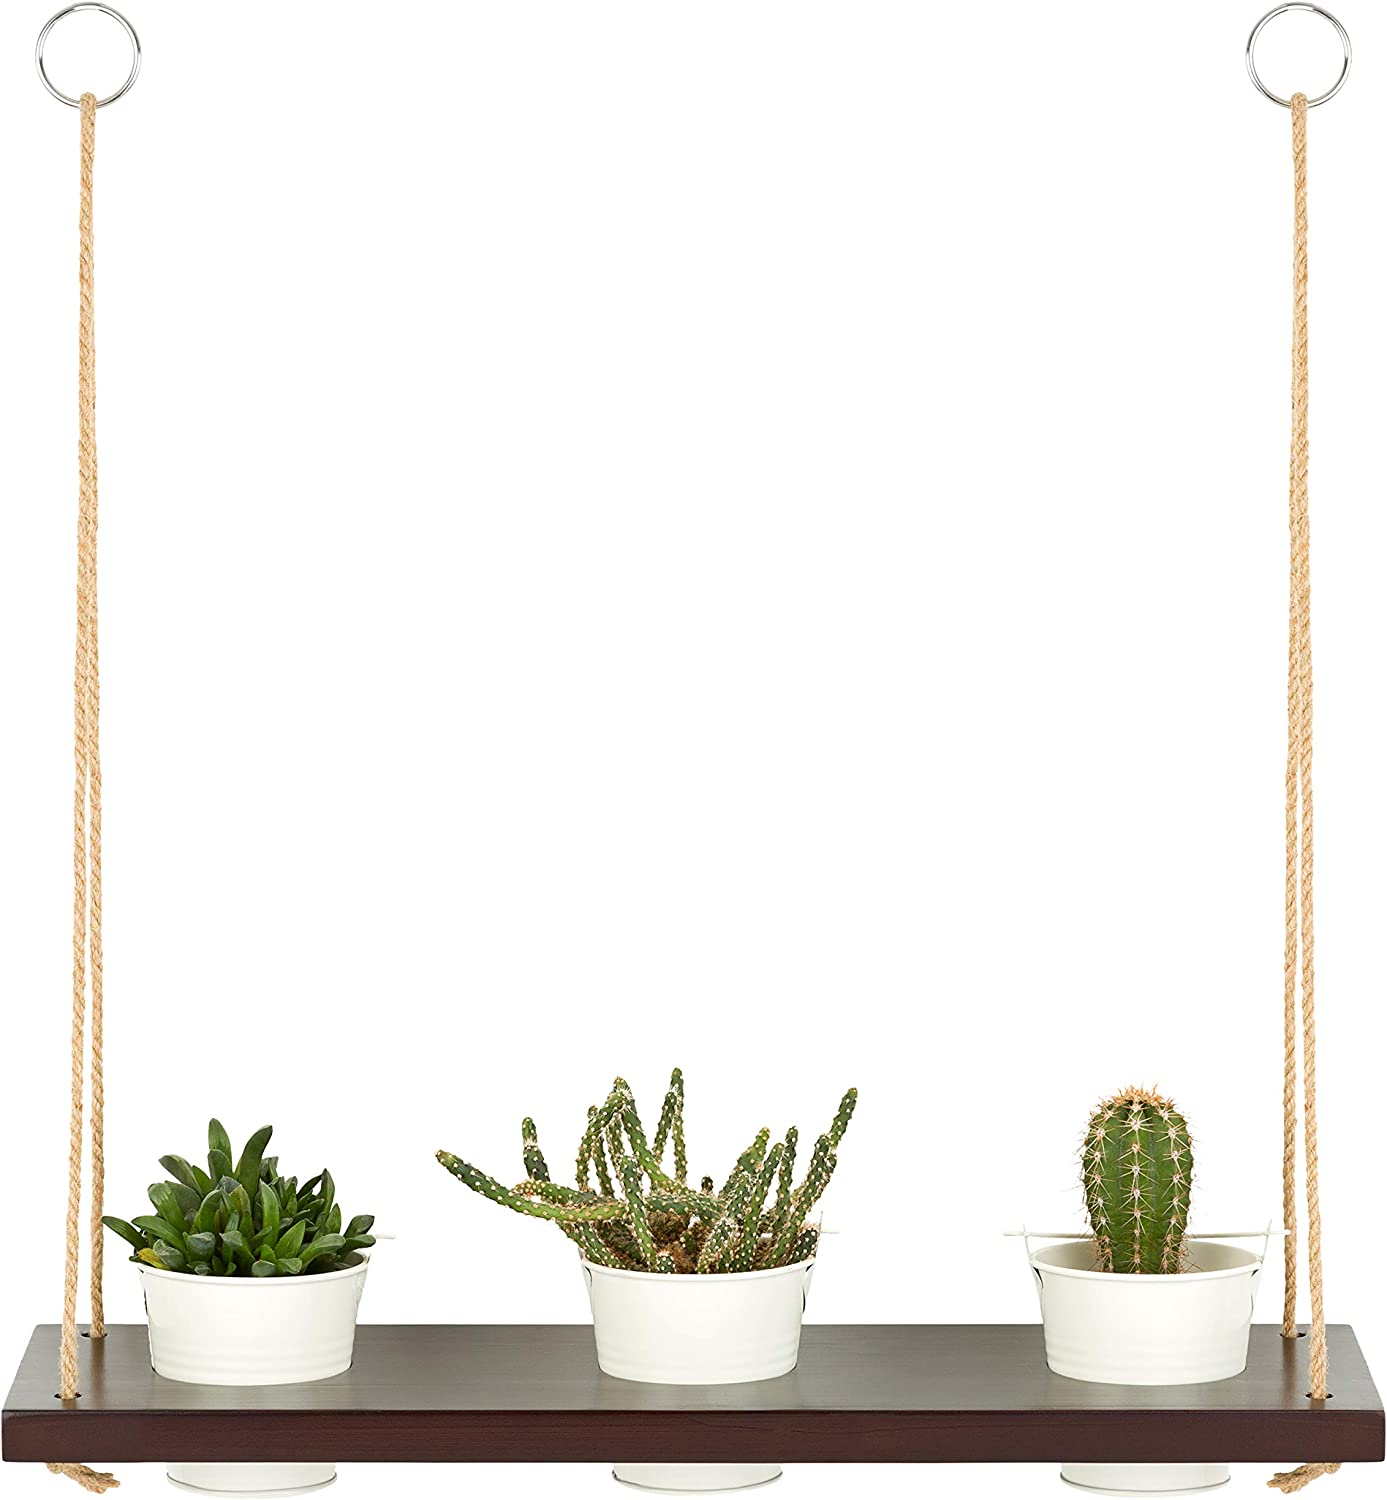 Flareglow Vertical Window or Wall Hanging Planter Wood Floating Shelf with Succulent Herb Plant Pot Set for Indoor Decorative Use in Kitchen, Living Room, Bathroom or Balcony (3 Pots Included)